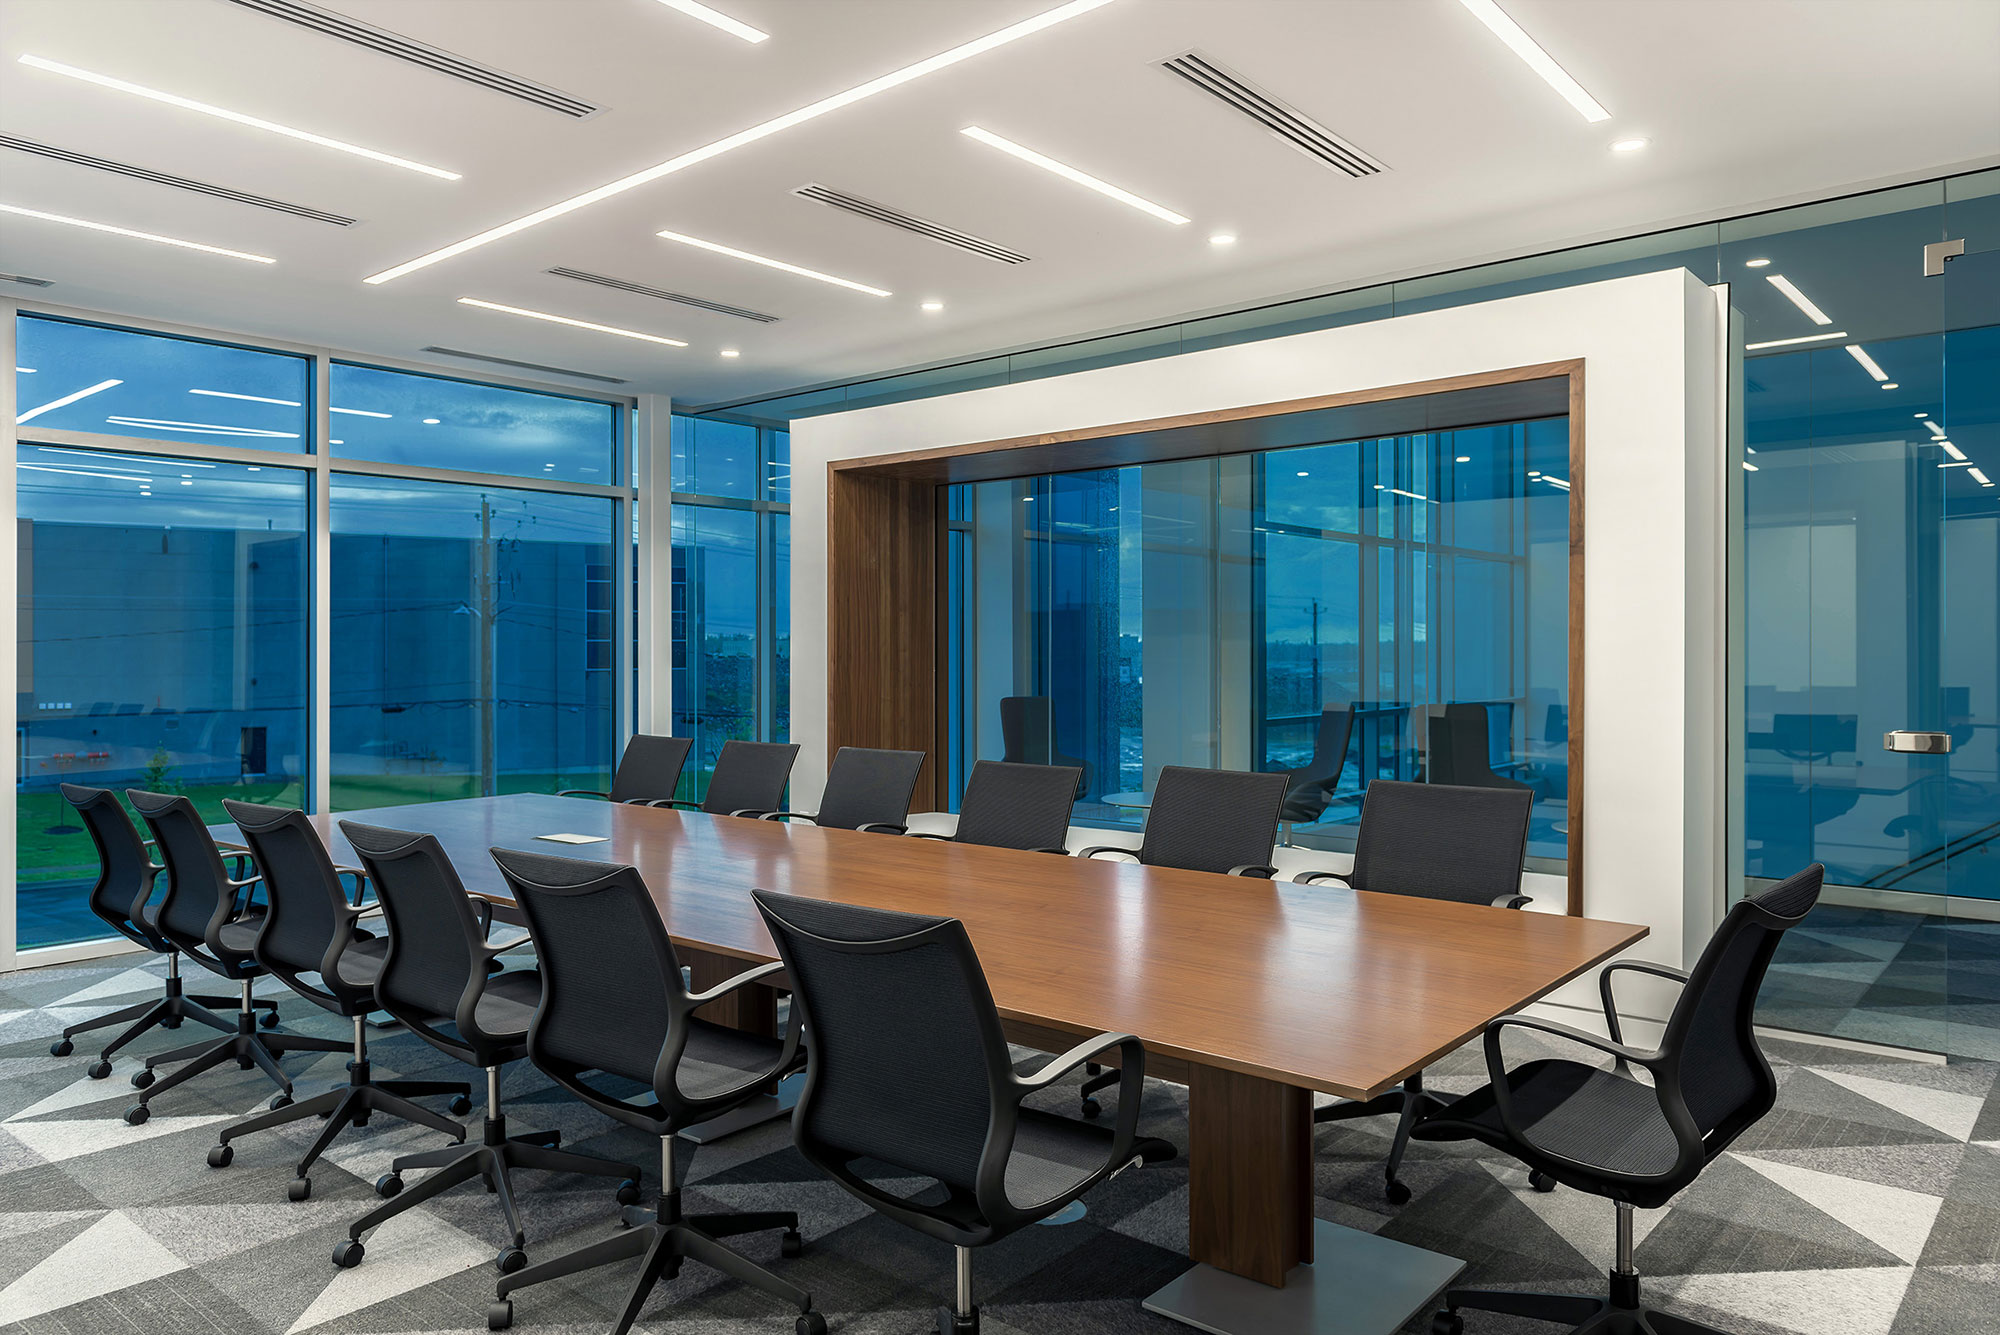 interior-design-manufacturing-office-conference-room.jpg